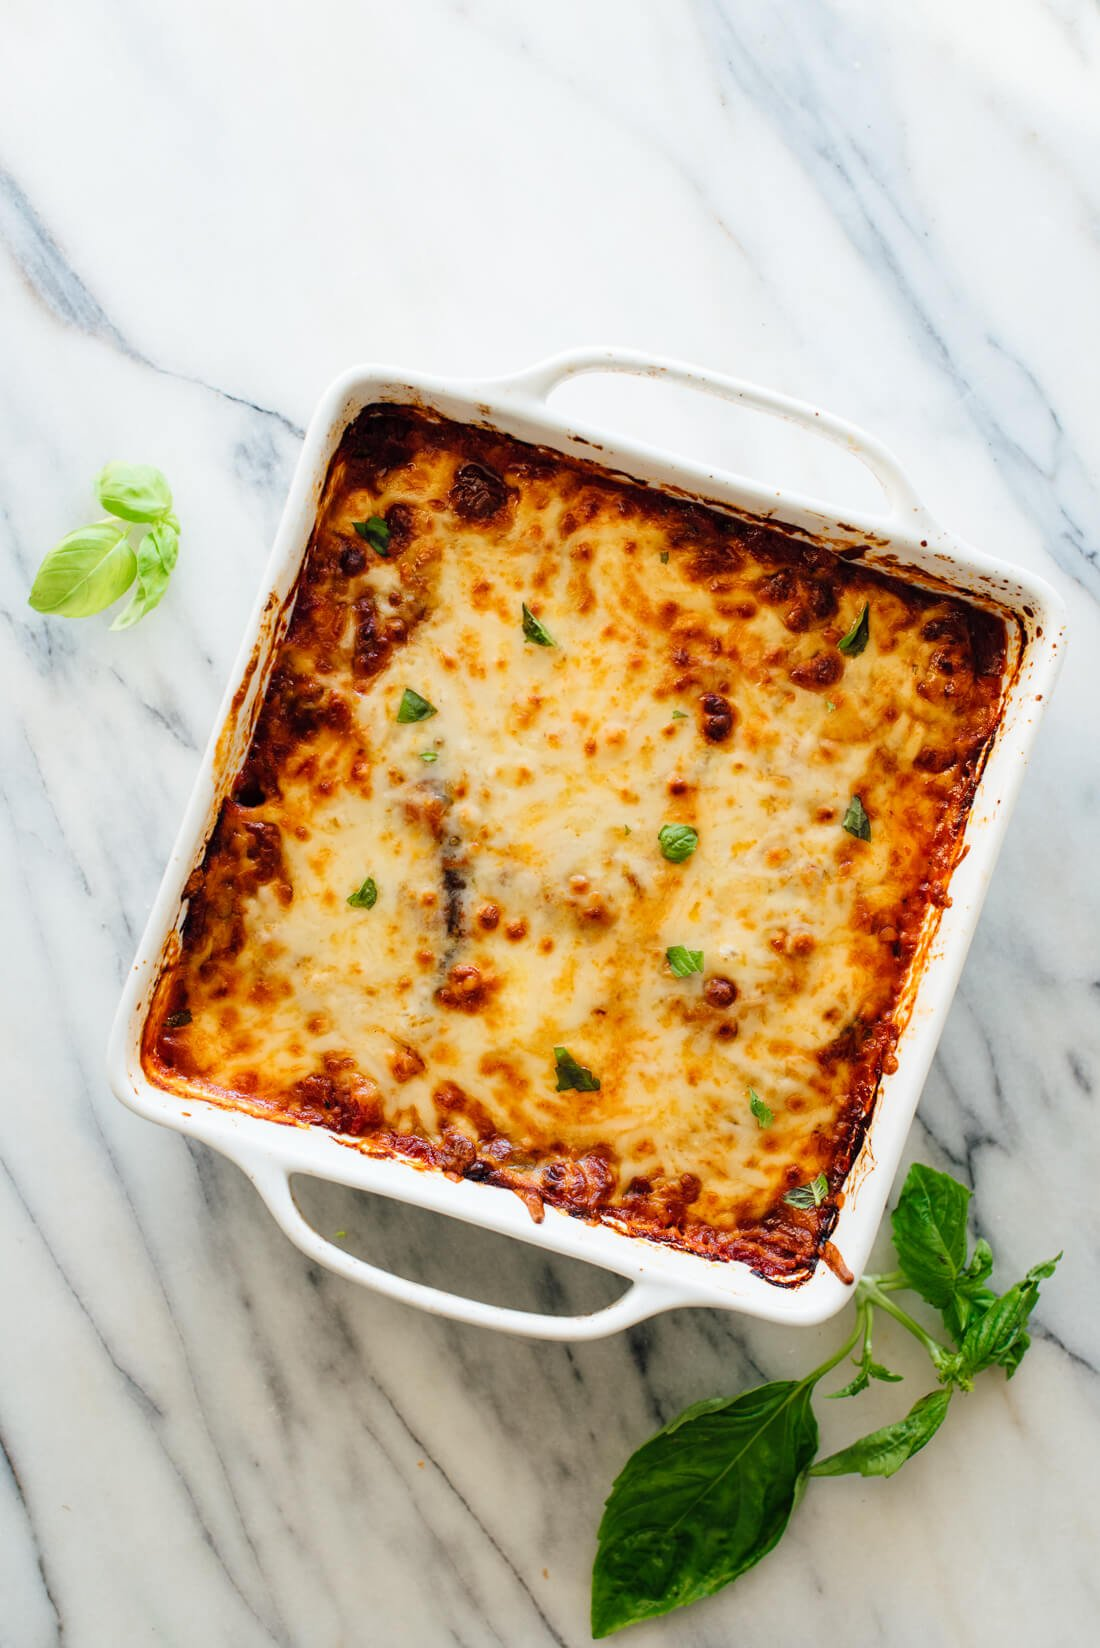 This gluten-free eggplant Parmesan recipe is easy to make. It's gluten-free because there's no breading involved in authentic Italian eggplant Parm! #glutenfree #vegetarian